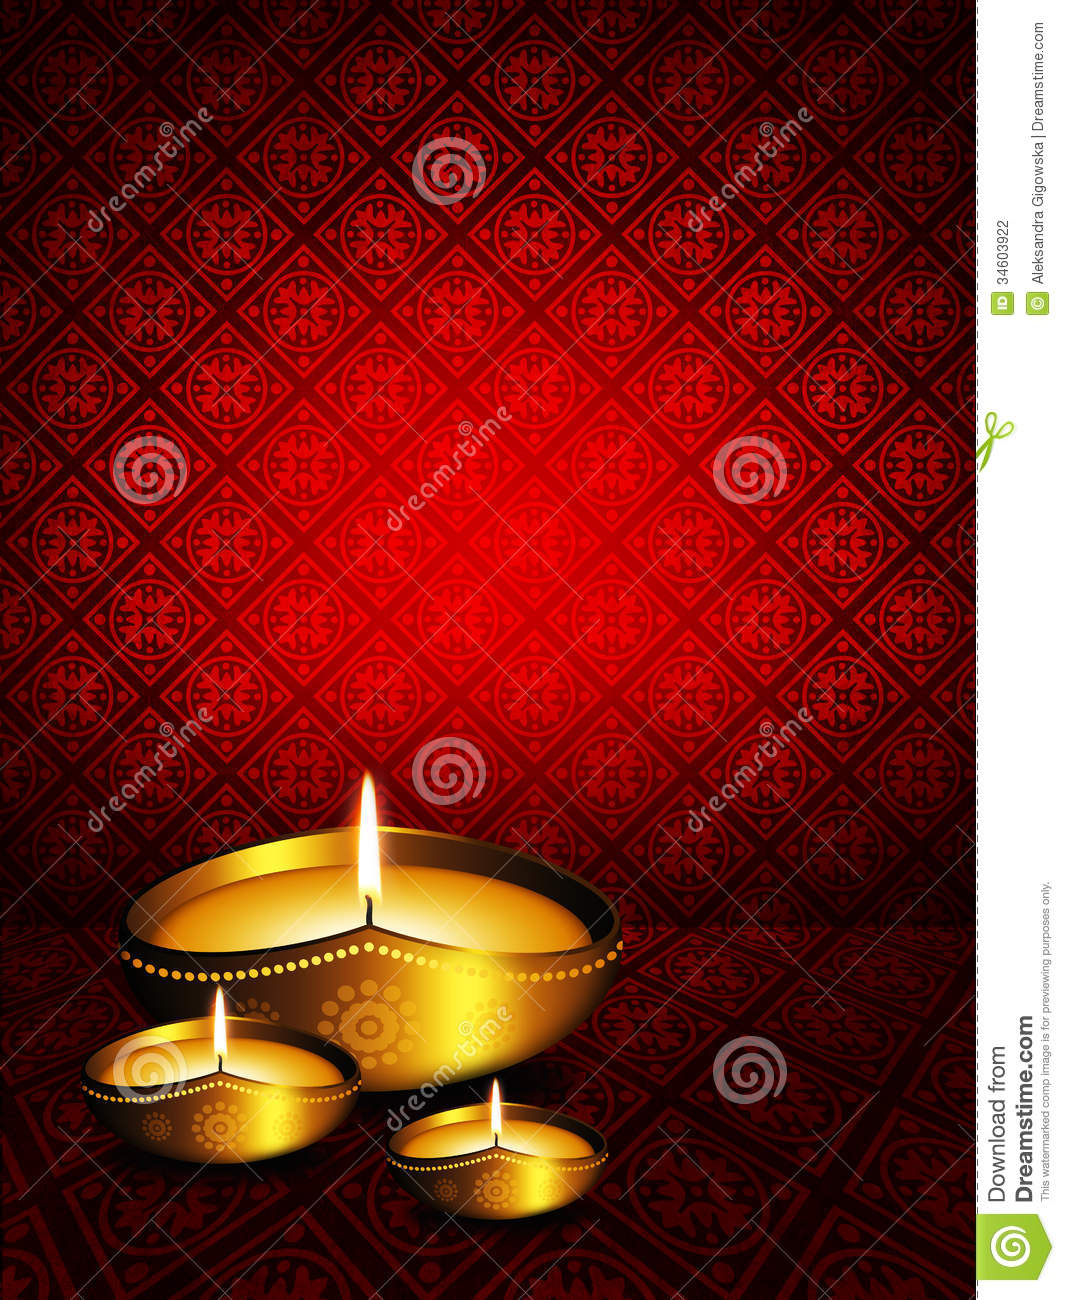 Oil lamp with diwali greetings over dark background stock oil lamp with diwali greetings over dark background m4hsunfo Images